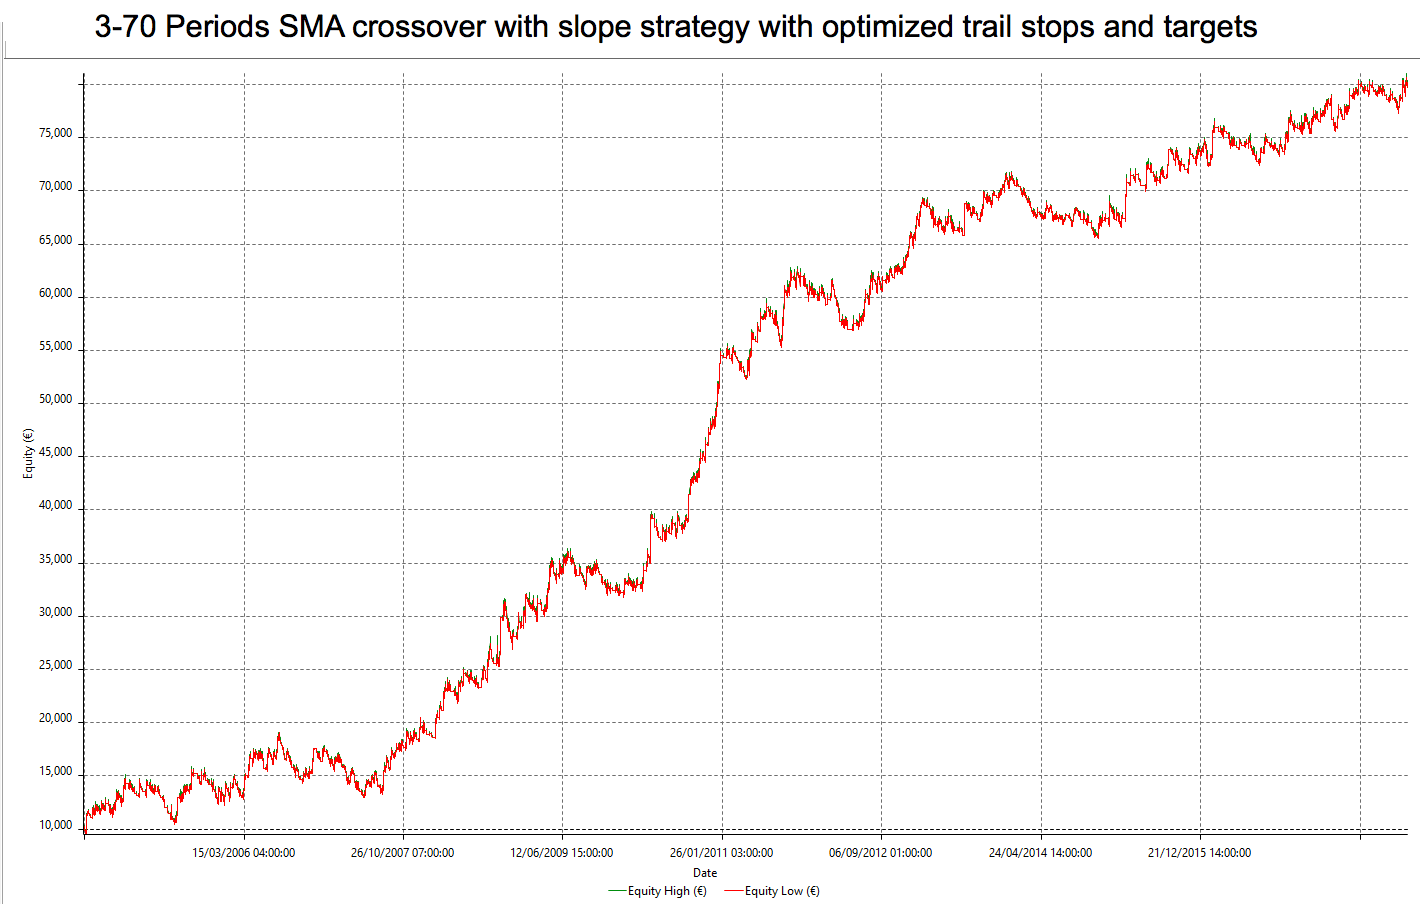 SMA with slopes opt trail and targets equity curve